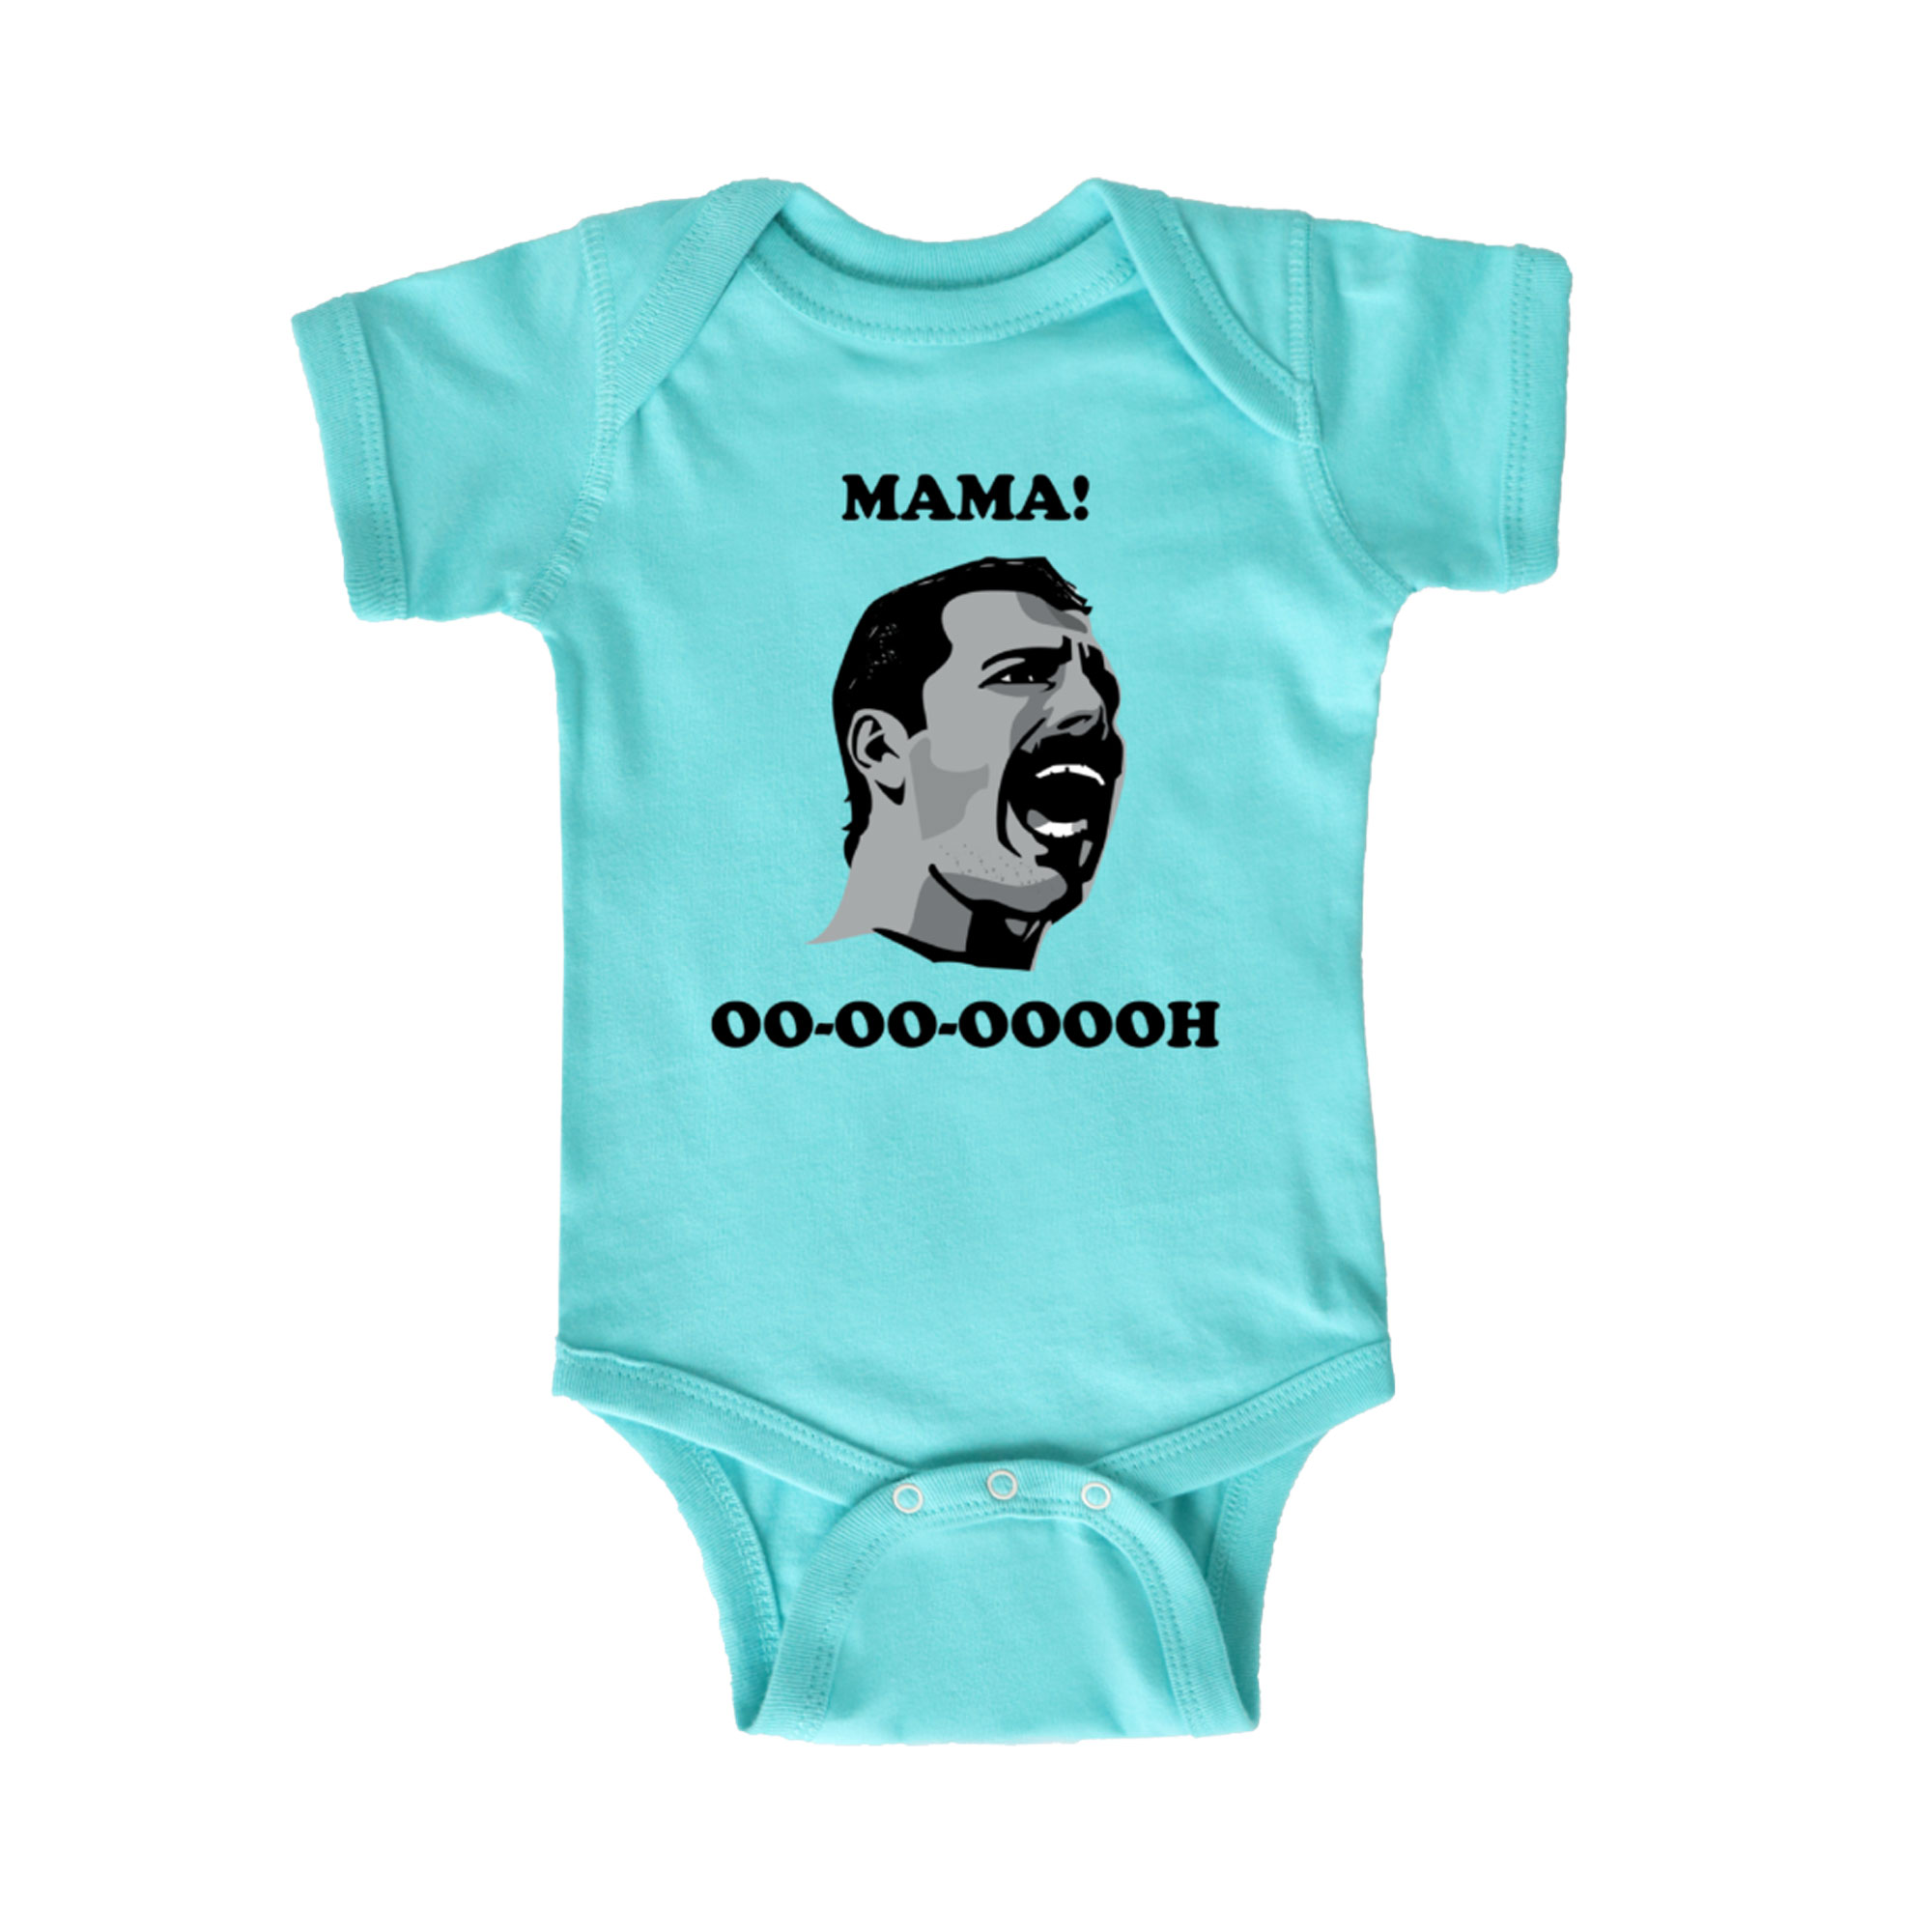 Baby Onepiece Father/'s Day Baby Shower 100/% Cotton Baby One-piece 1st Birthday Baby Gift Freddie Mercury Mama Funny Baby Bodysuit